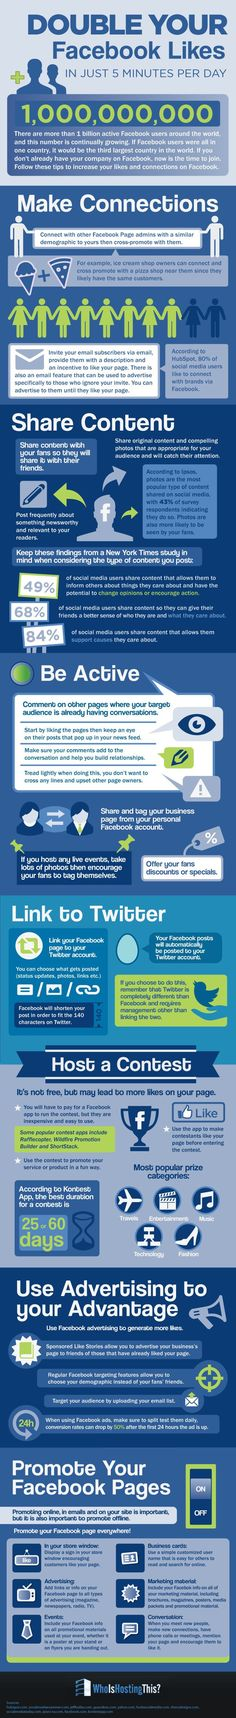 Infographic: How to double your Facebook likes - Inside Facebook